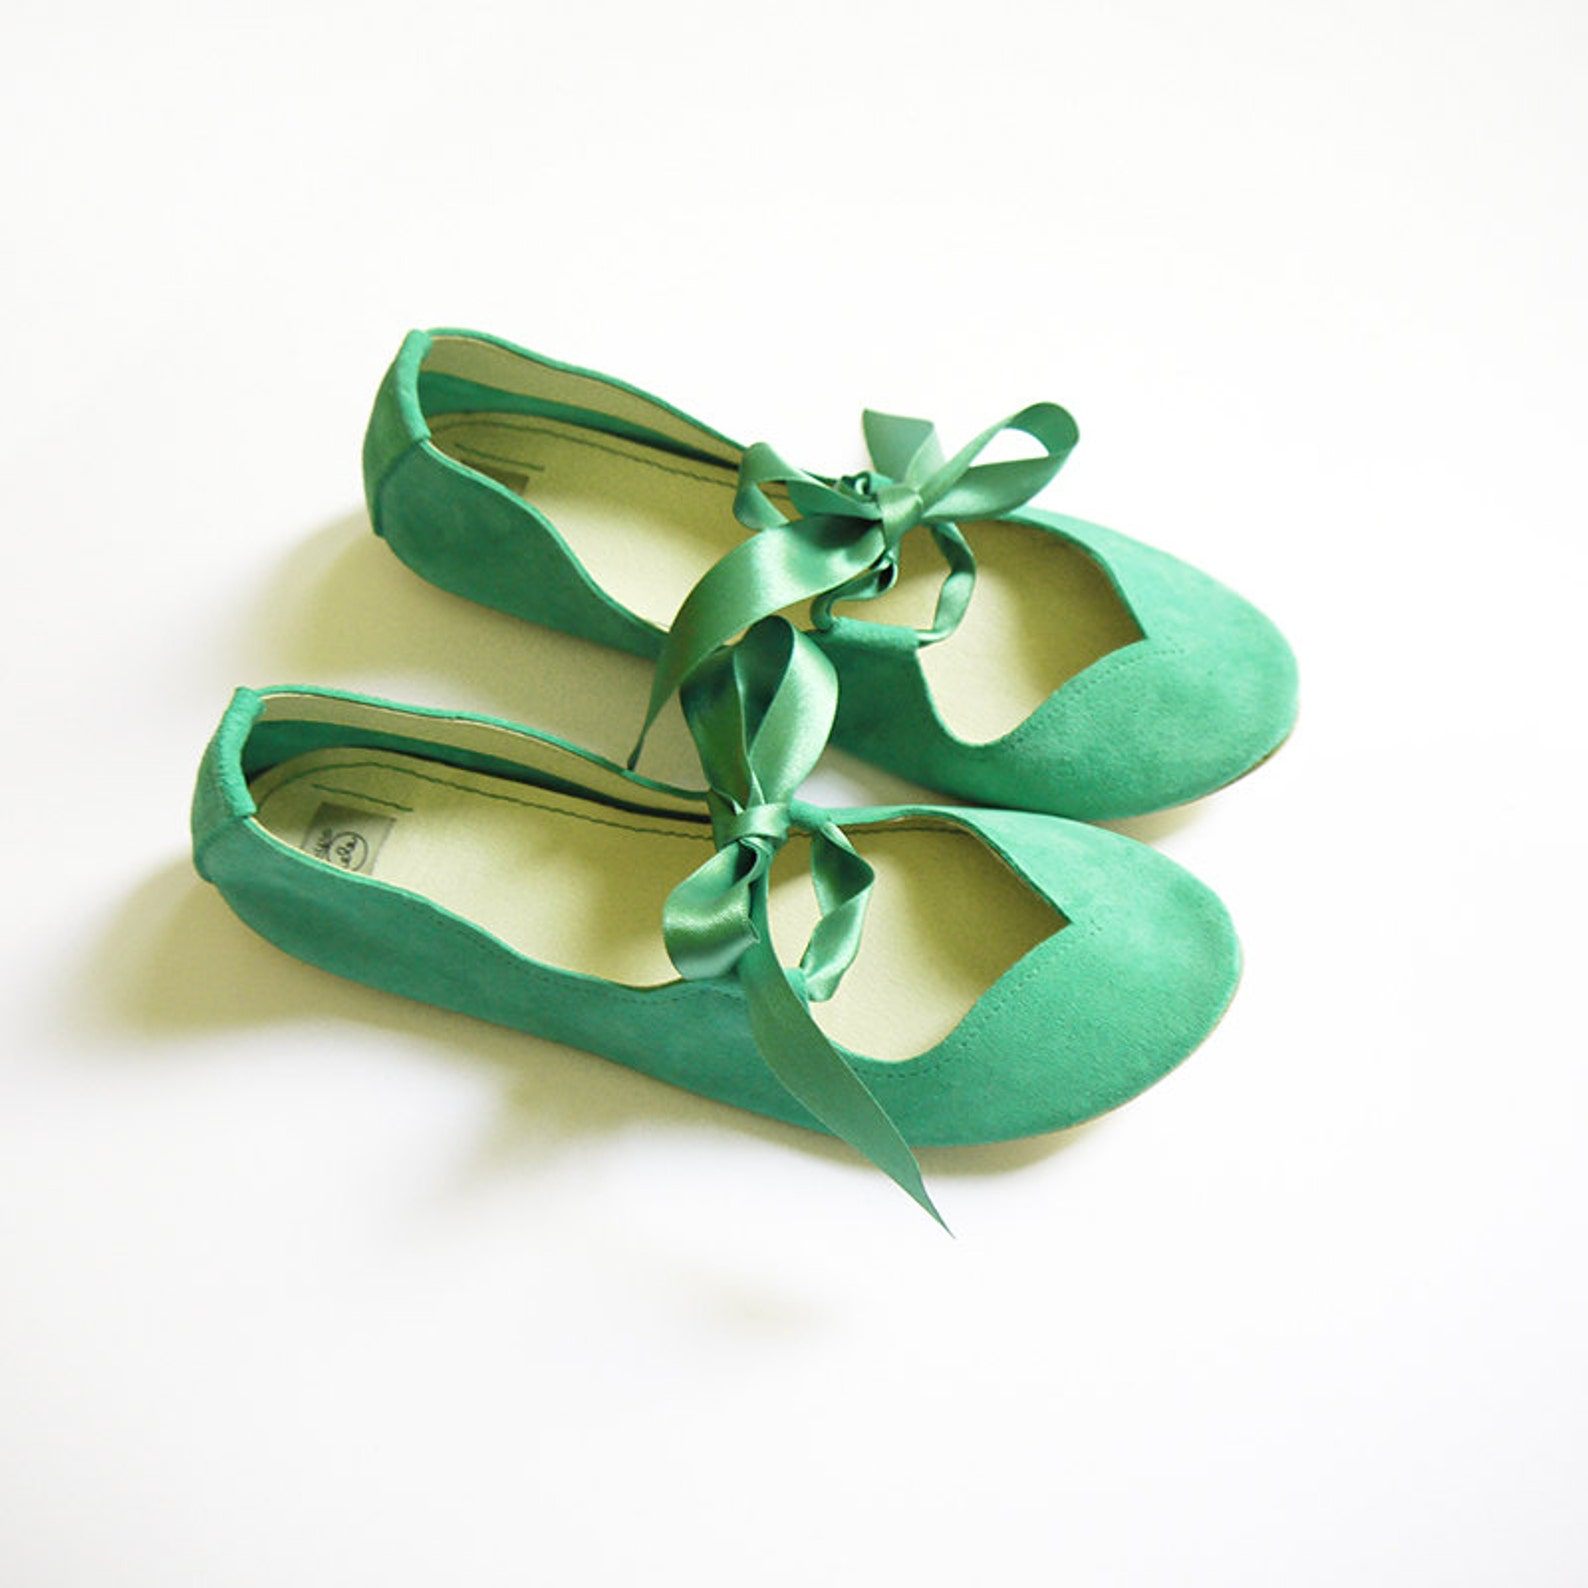 ballet flats with ribbon. brautschuhe. wedding ballet flats. mary jane shoes. bridal shoes. flat wedding shoes. low heel shoes.